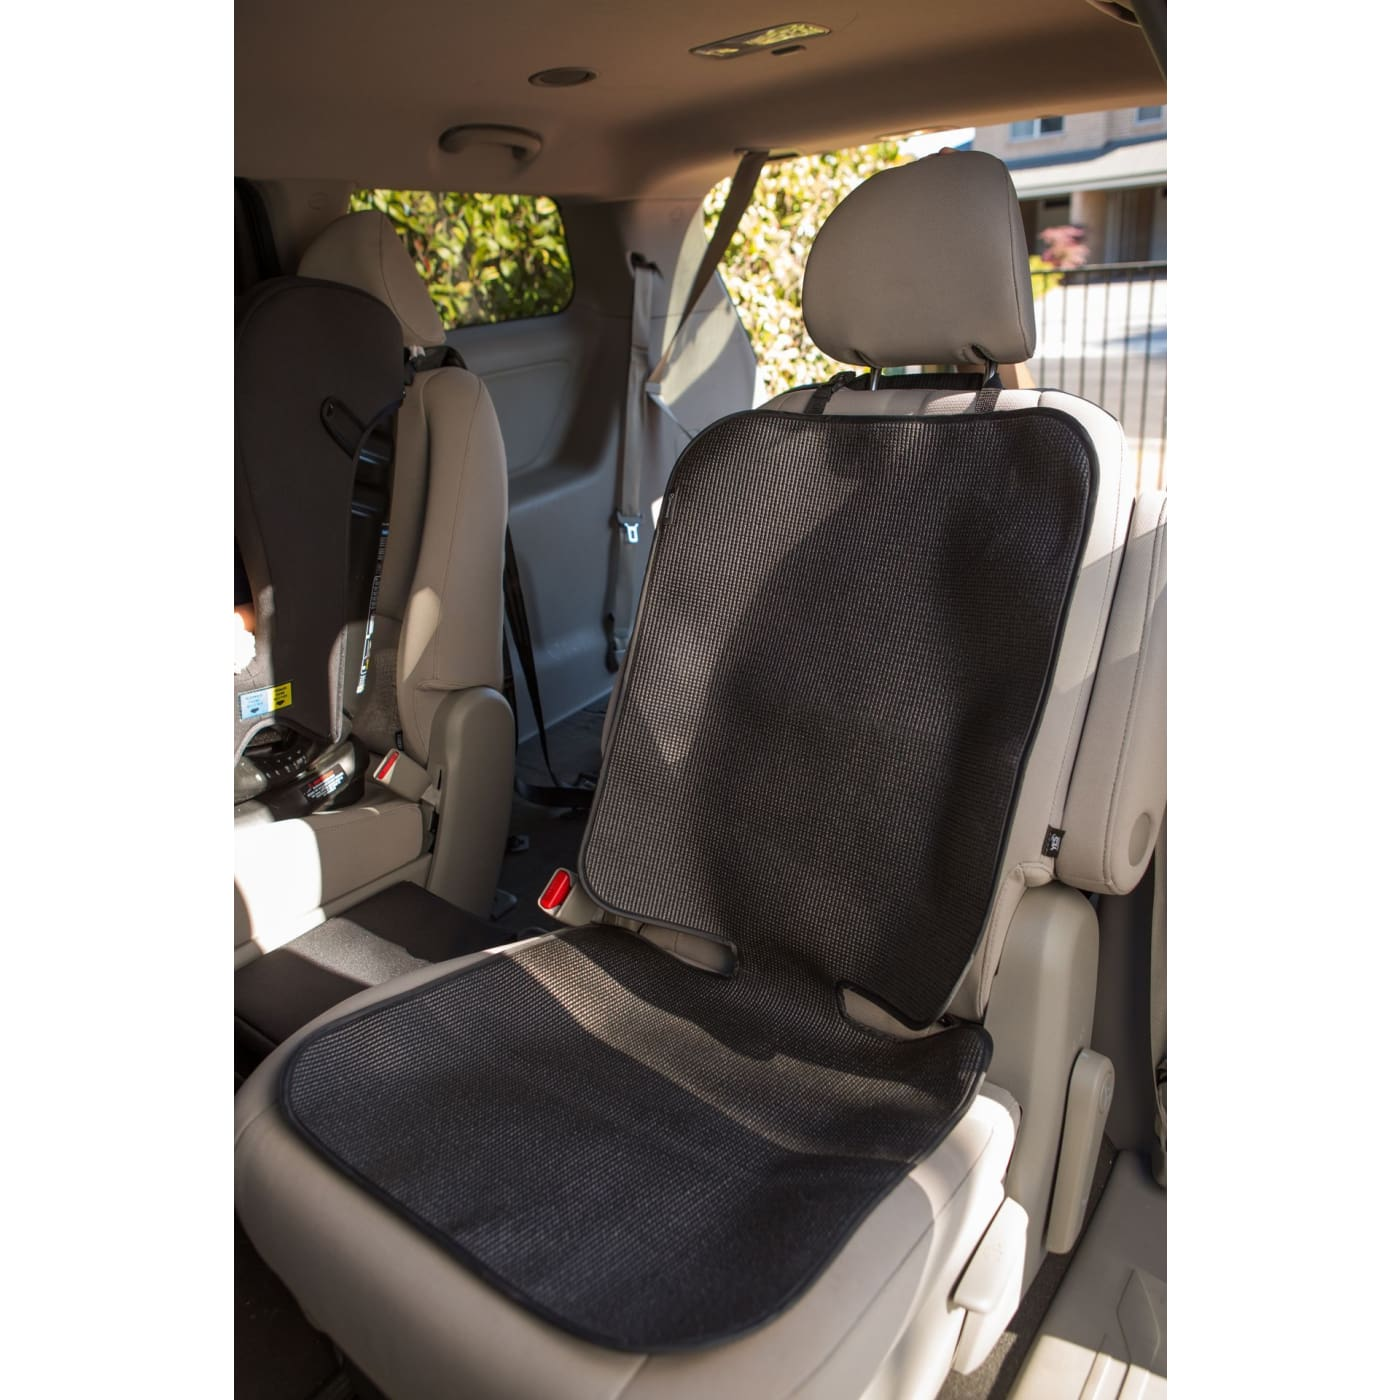 InfaSecure Non-Slip Seat Protector - CAR SEATS - SEAT PROTECTORS/MIRRORS/STORAGE